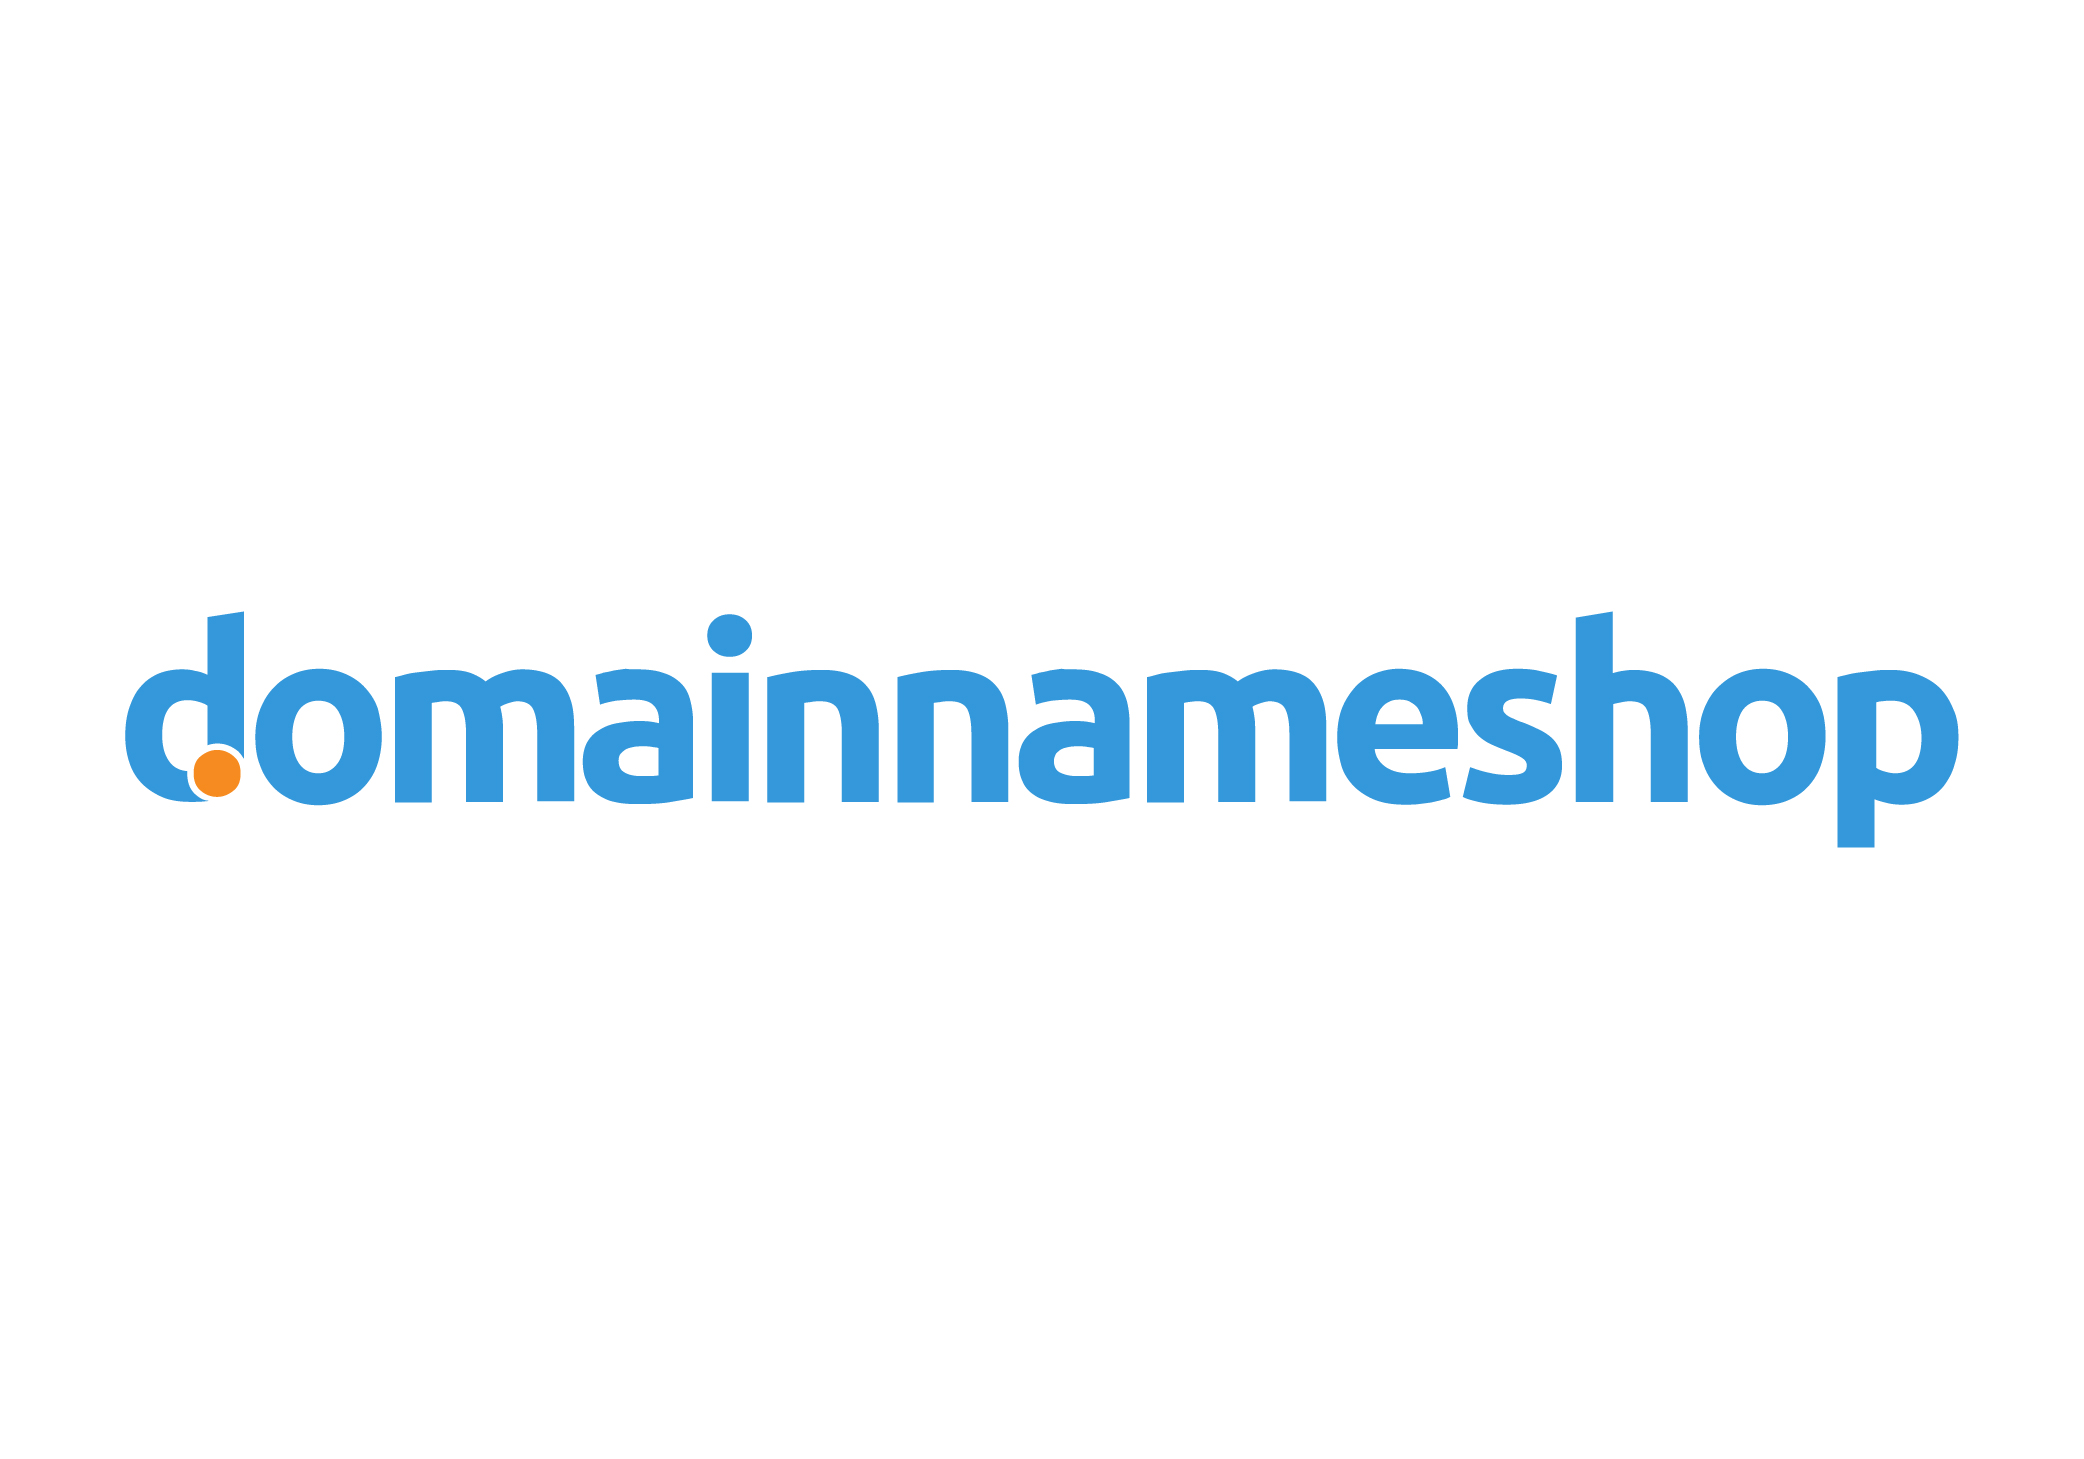 Domainnameshop